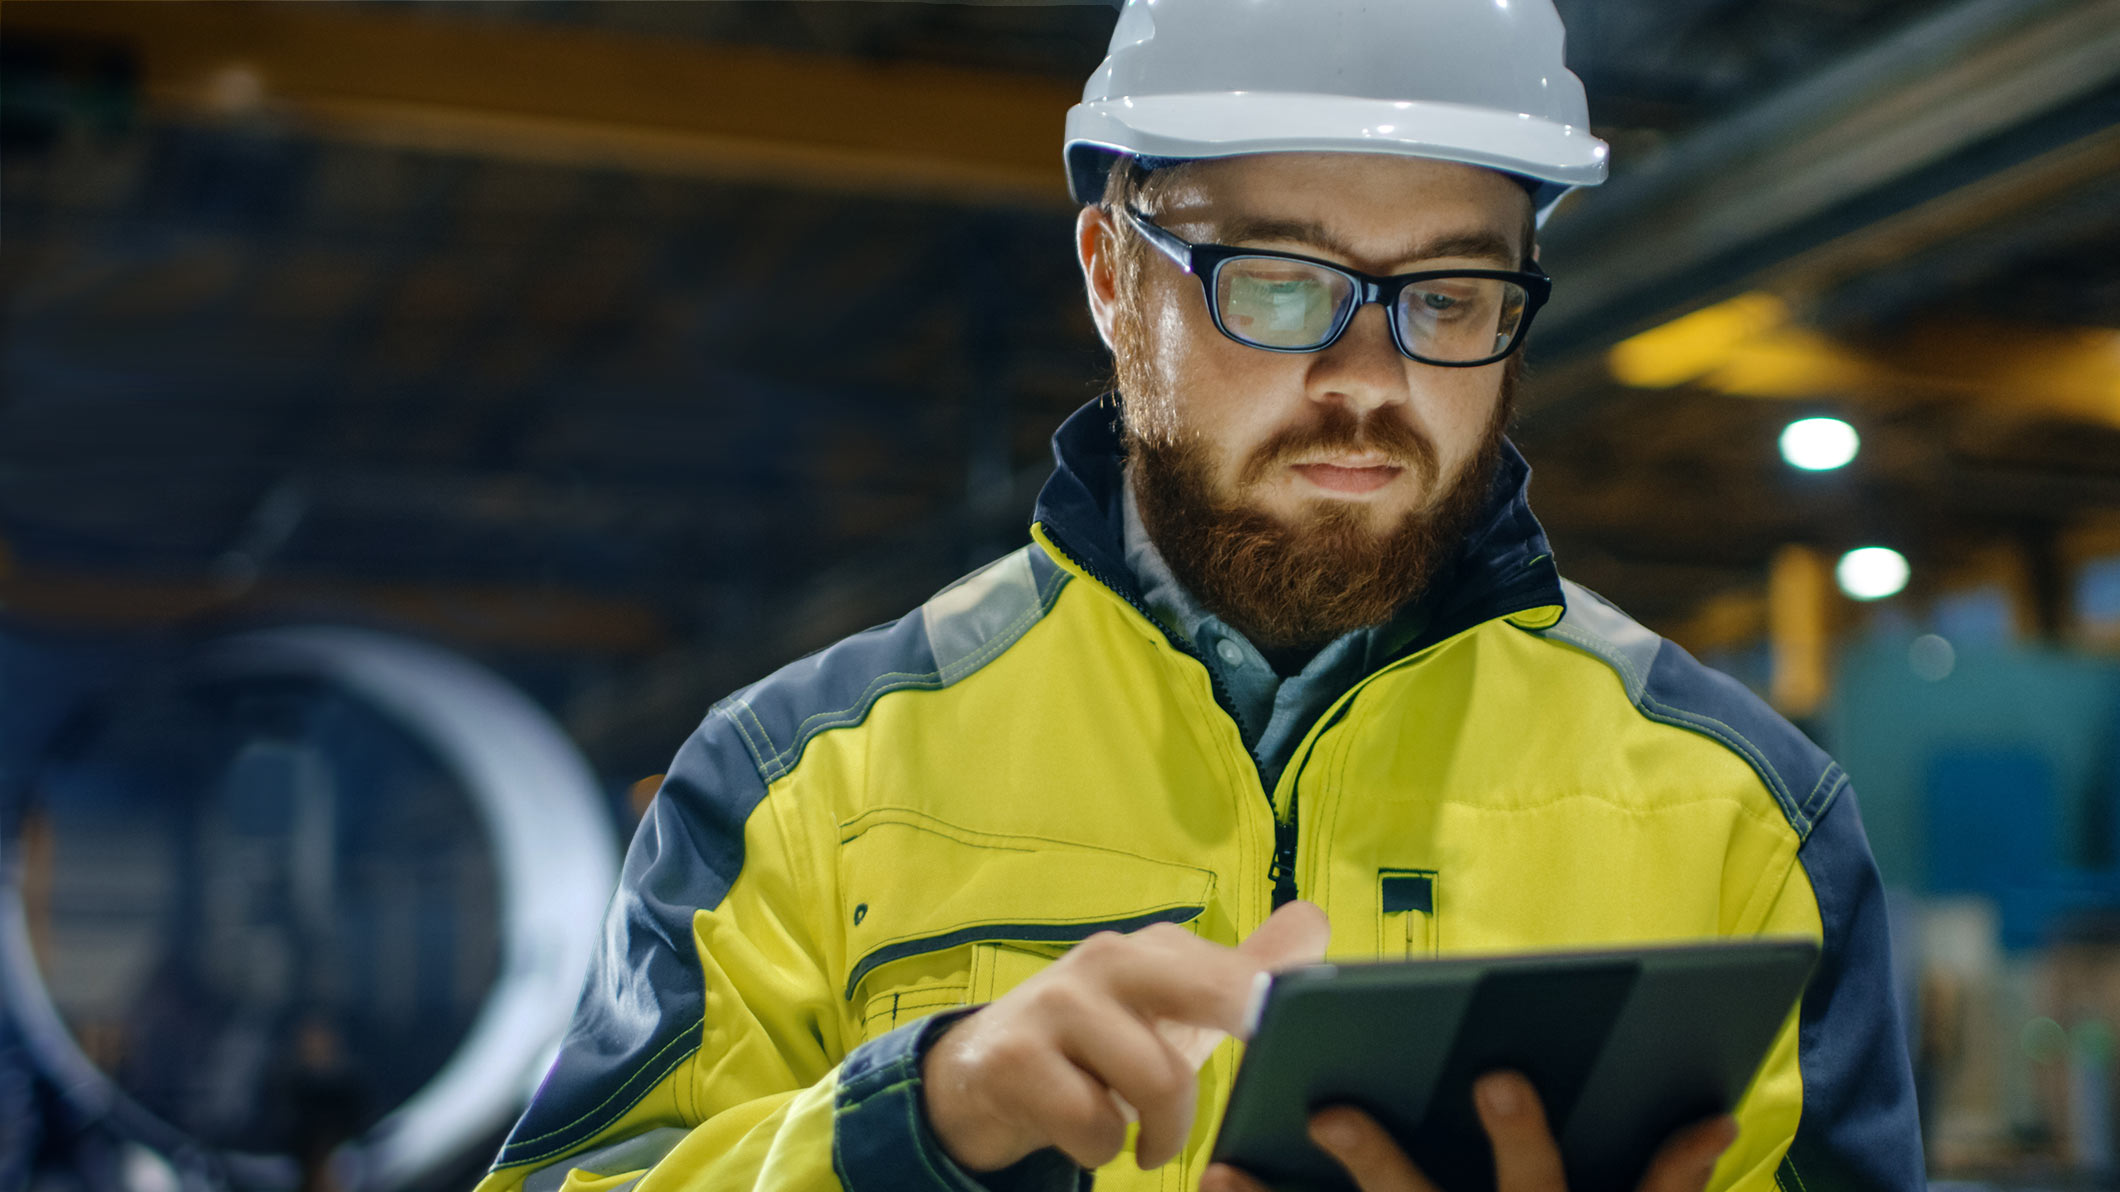 manufacturing worker looking at tablet in factory setting